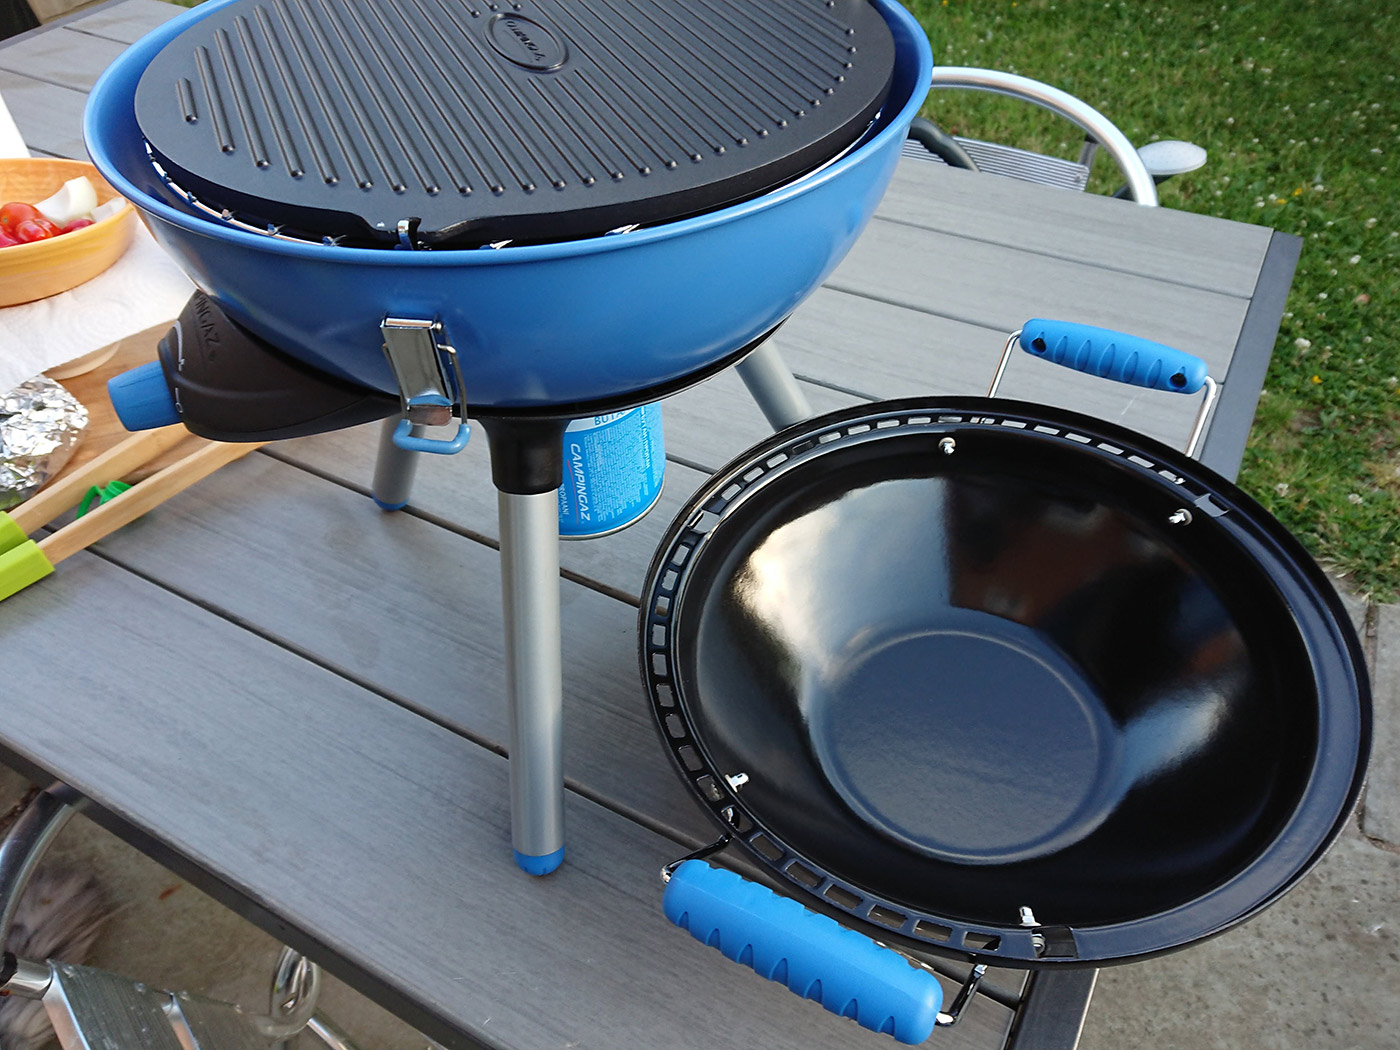 Campinggaz Grill Camping Gear Putting The Campingaz Party Grill To The Test